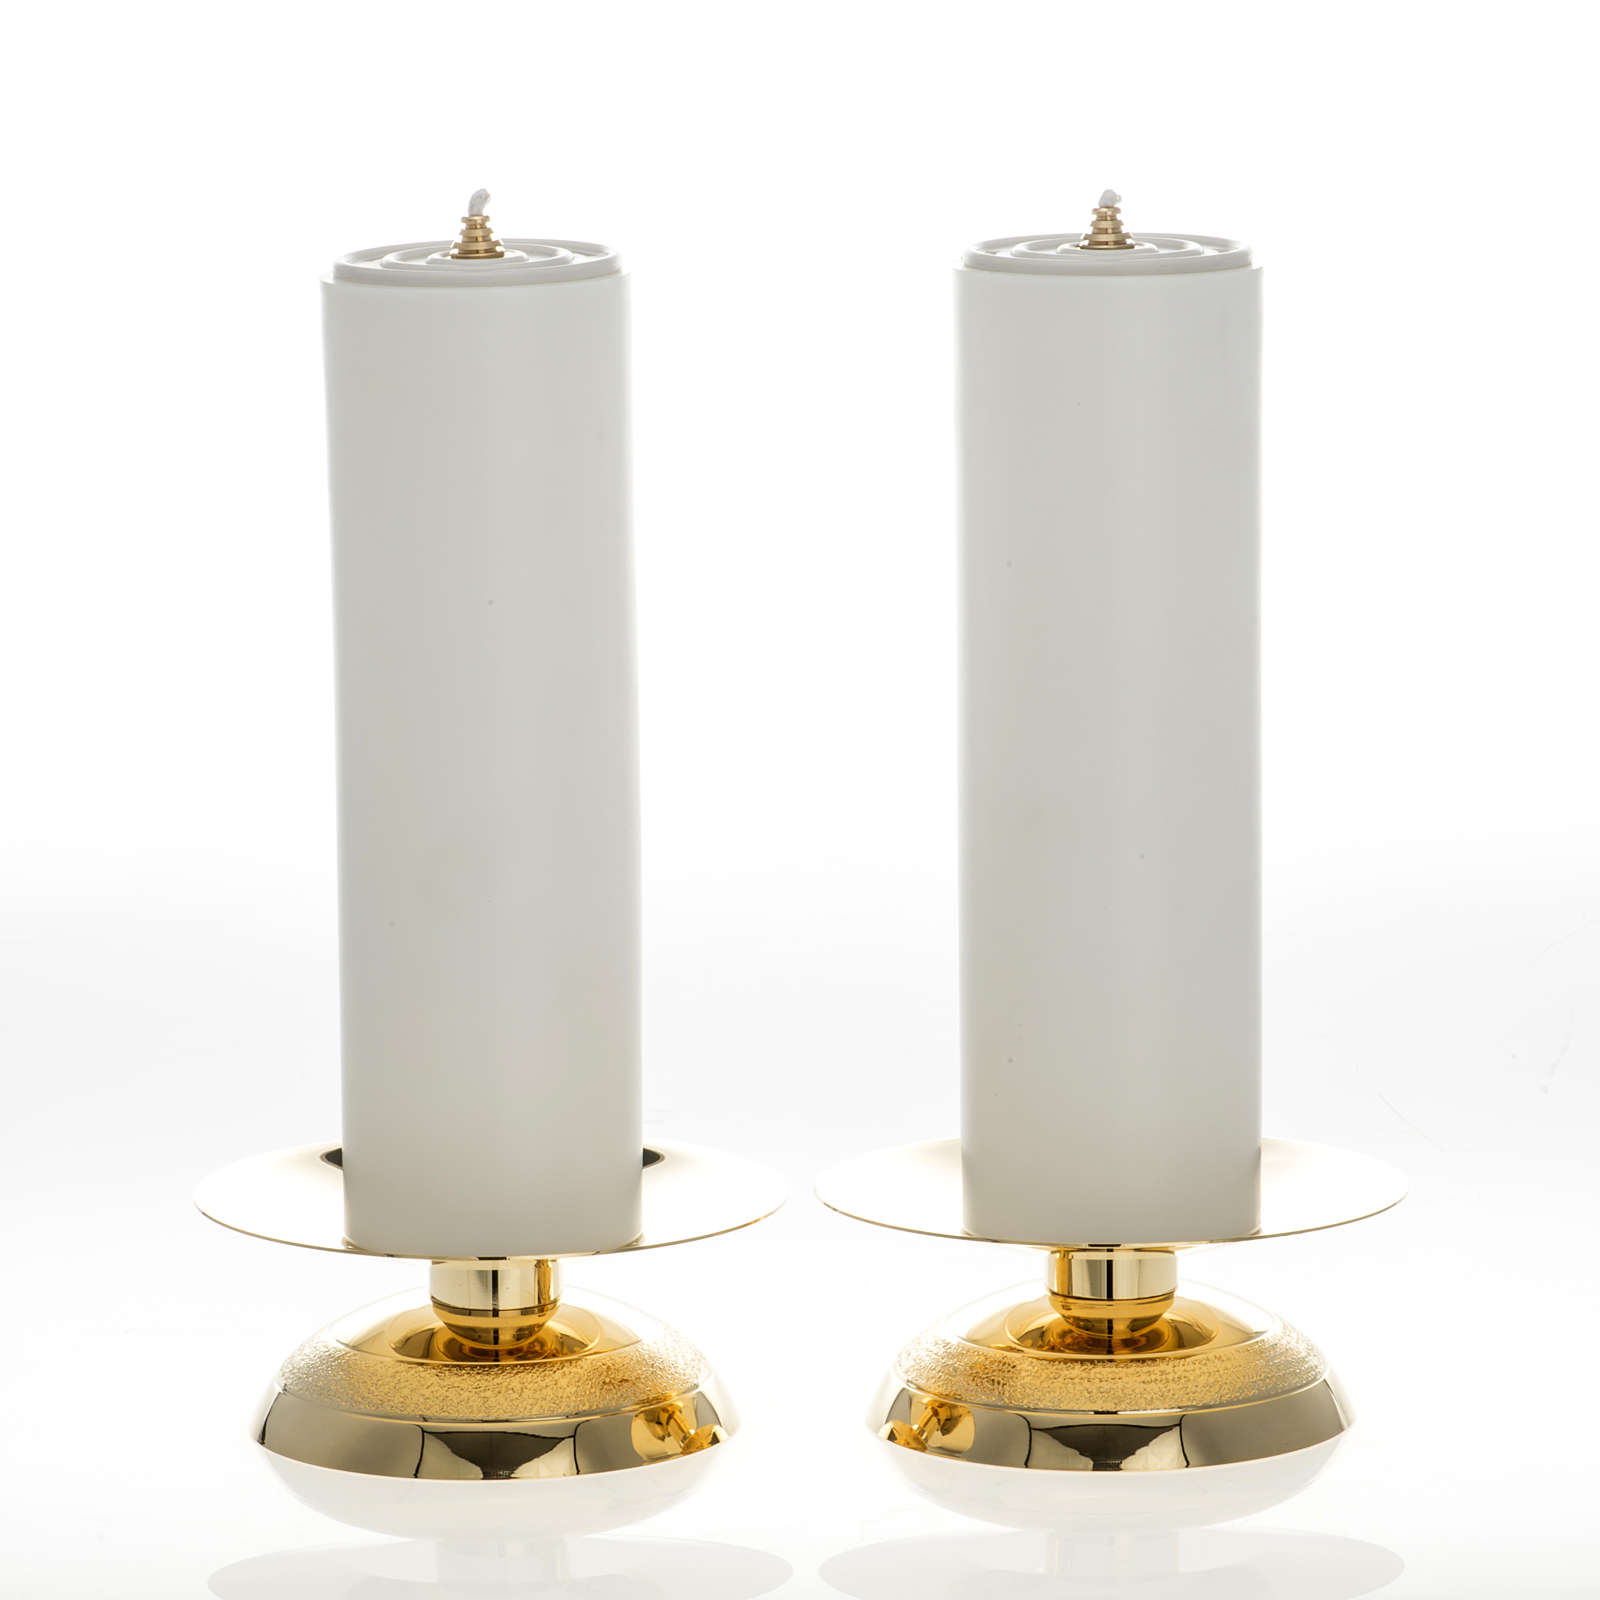 Candles and candle holders, two piece set 4